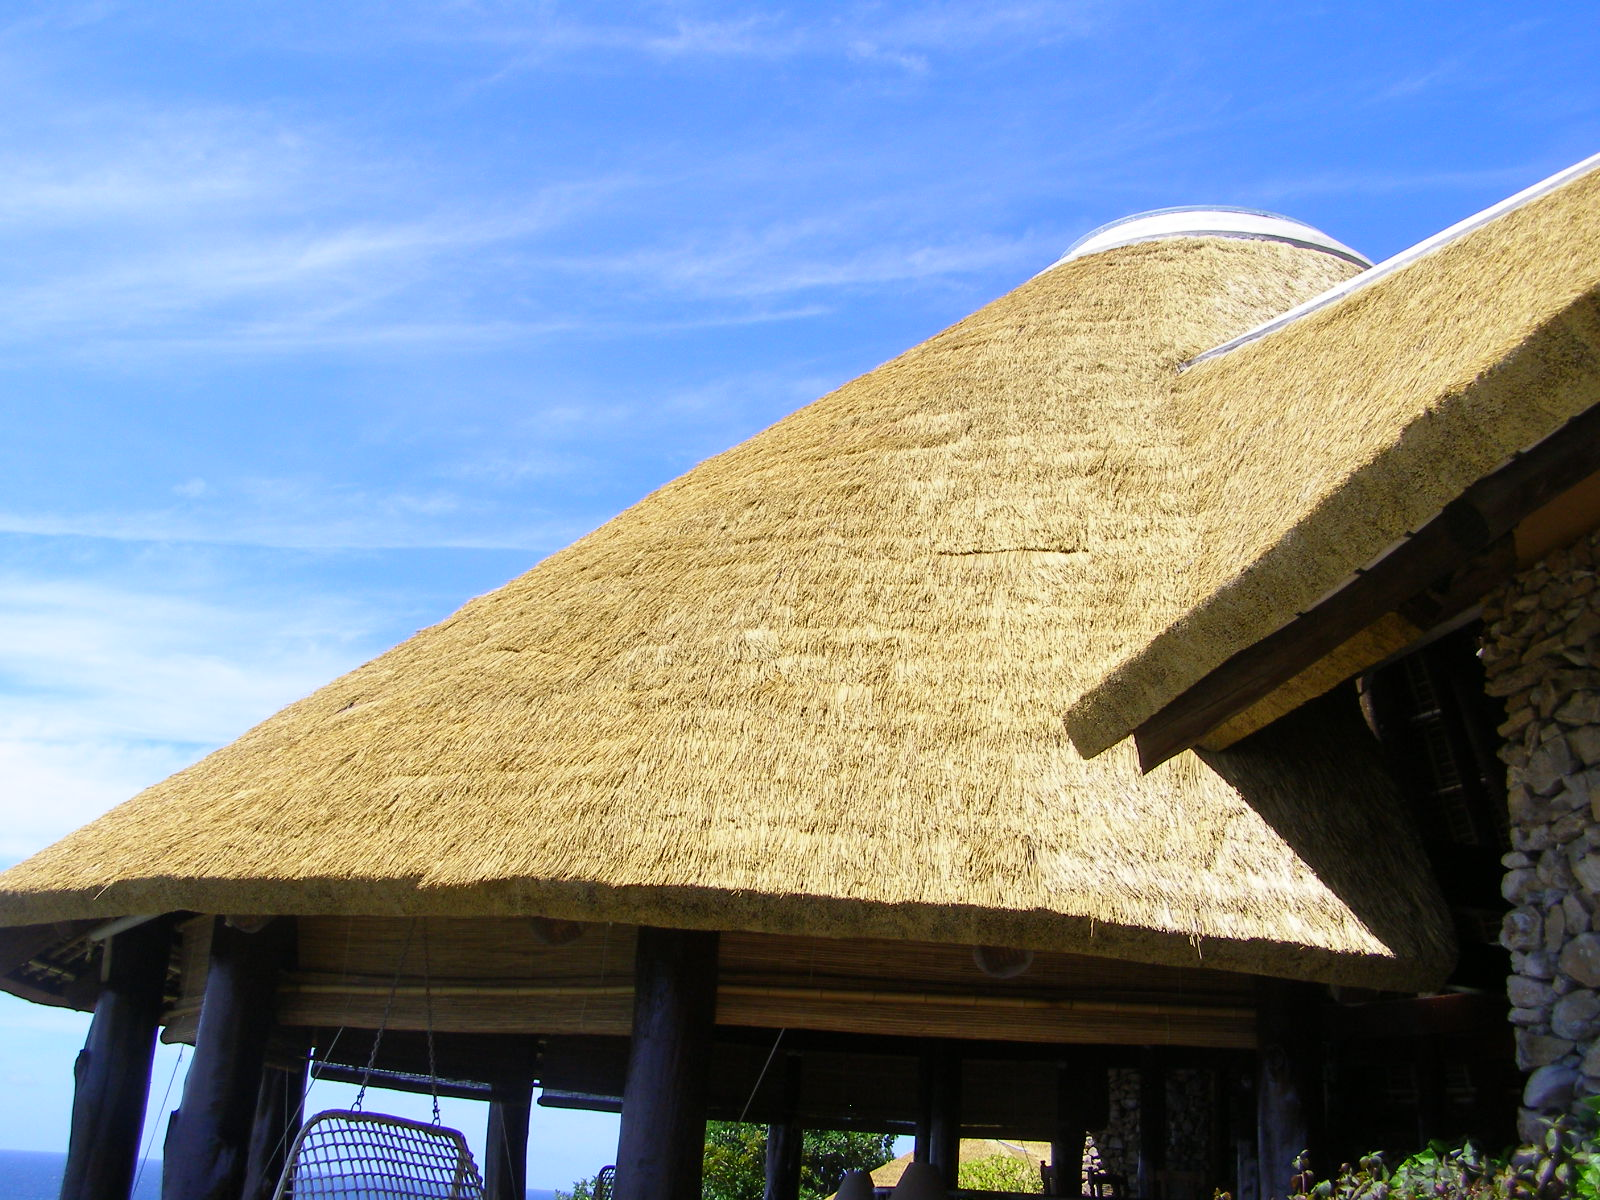 ARTIFICIAL-THATCH-ROOFING-FIBER-REED